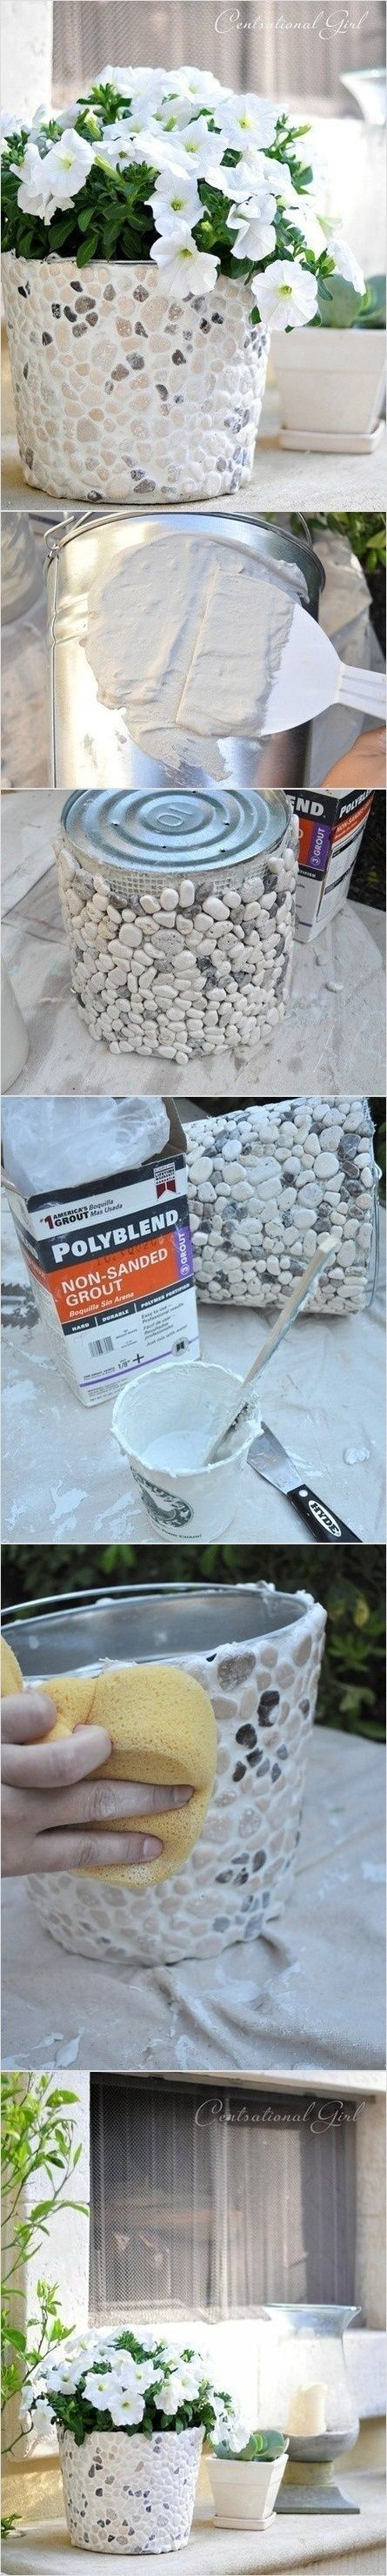 Alternative Gardning: DIY rock covered bucket//